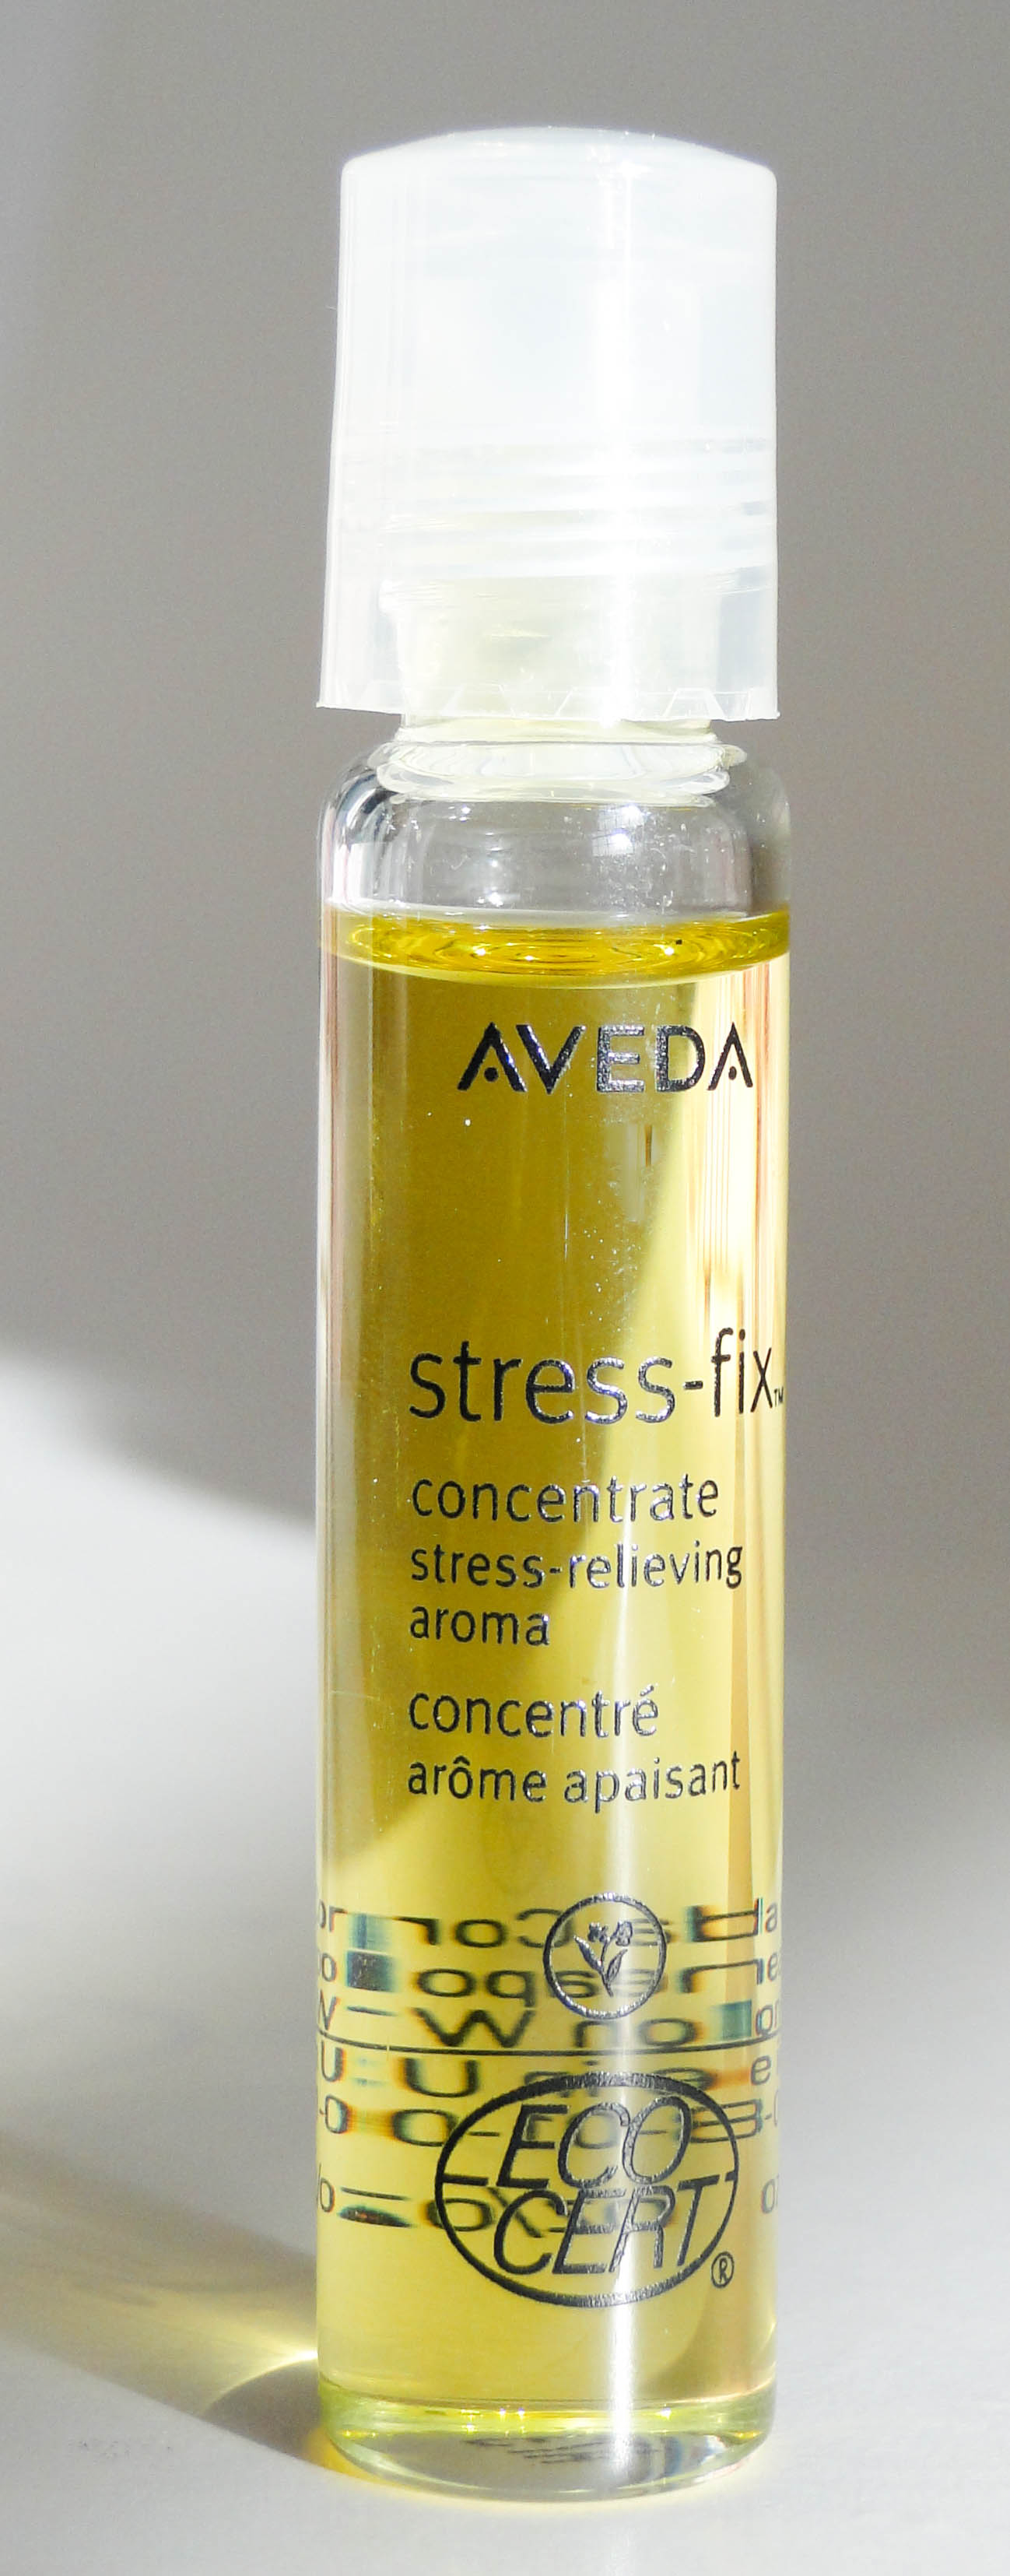 Aveda Stress-Fix Concentrate